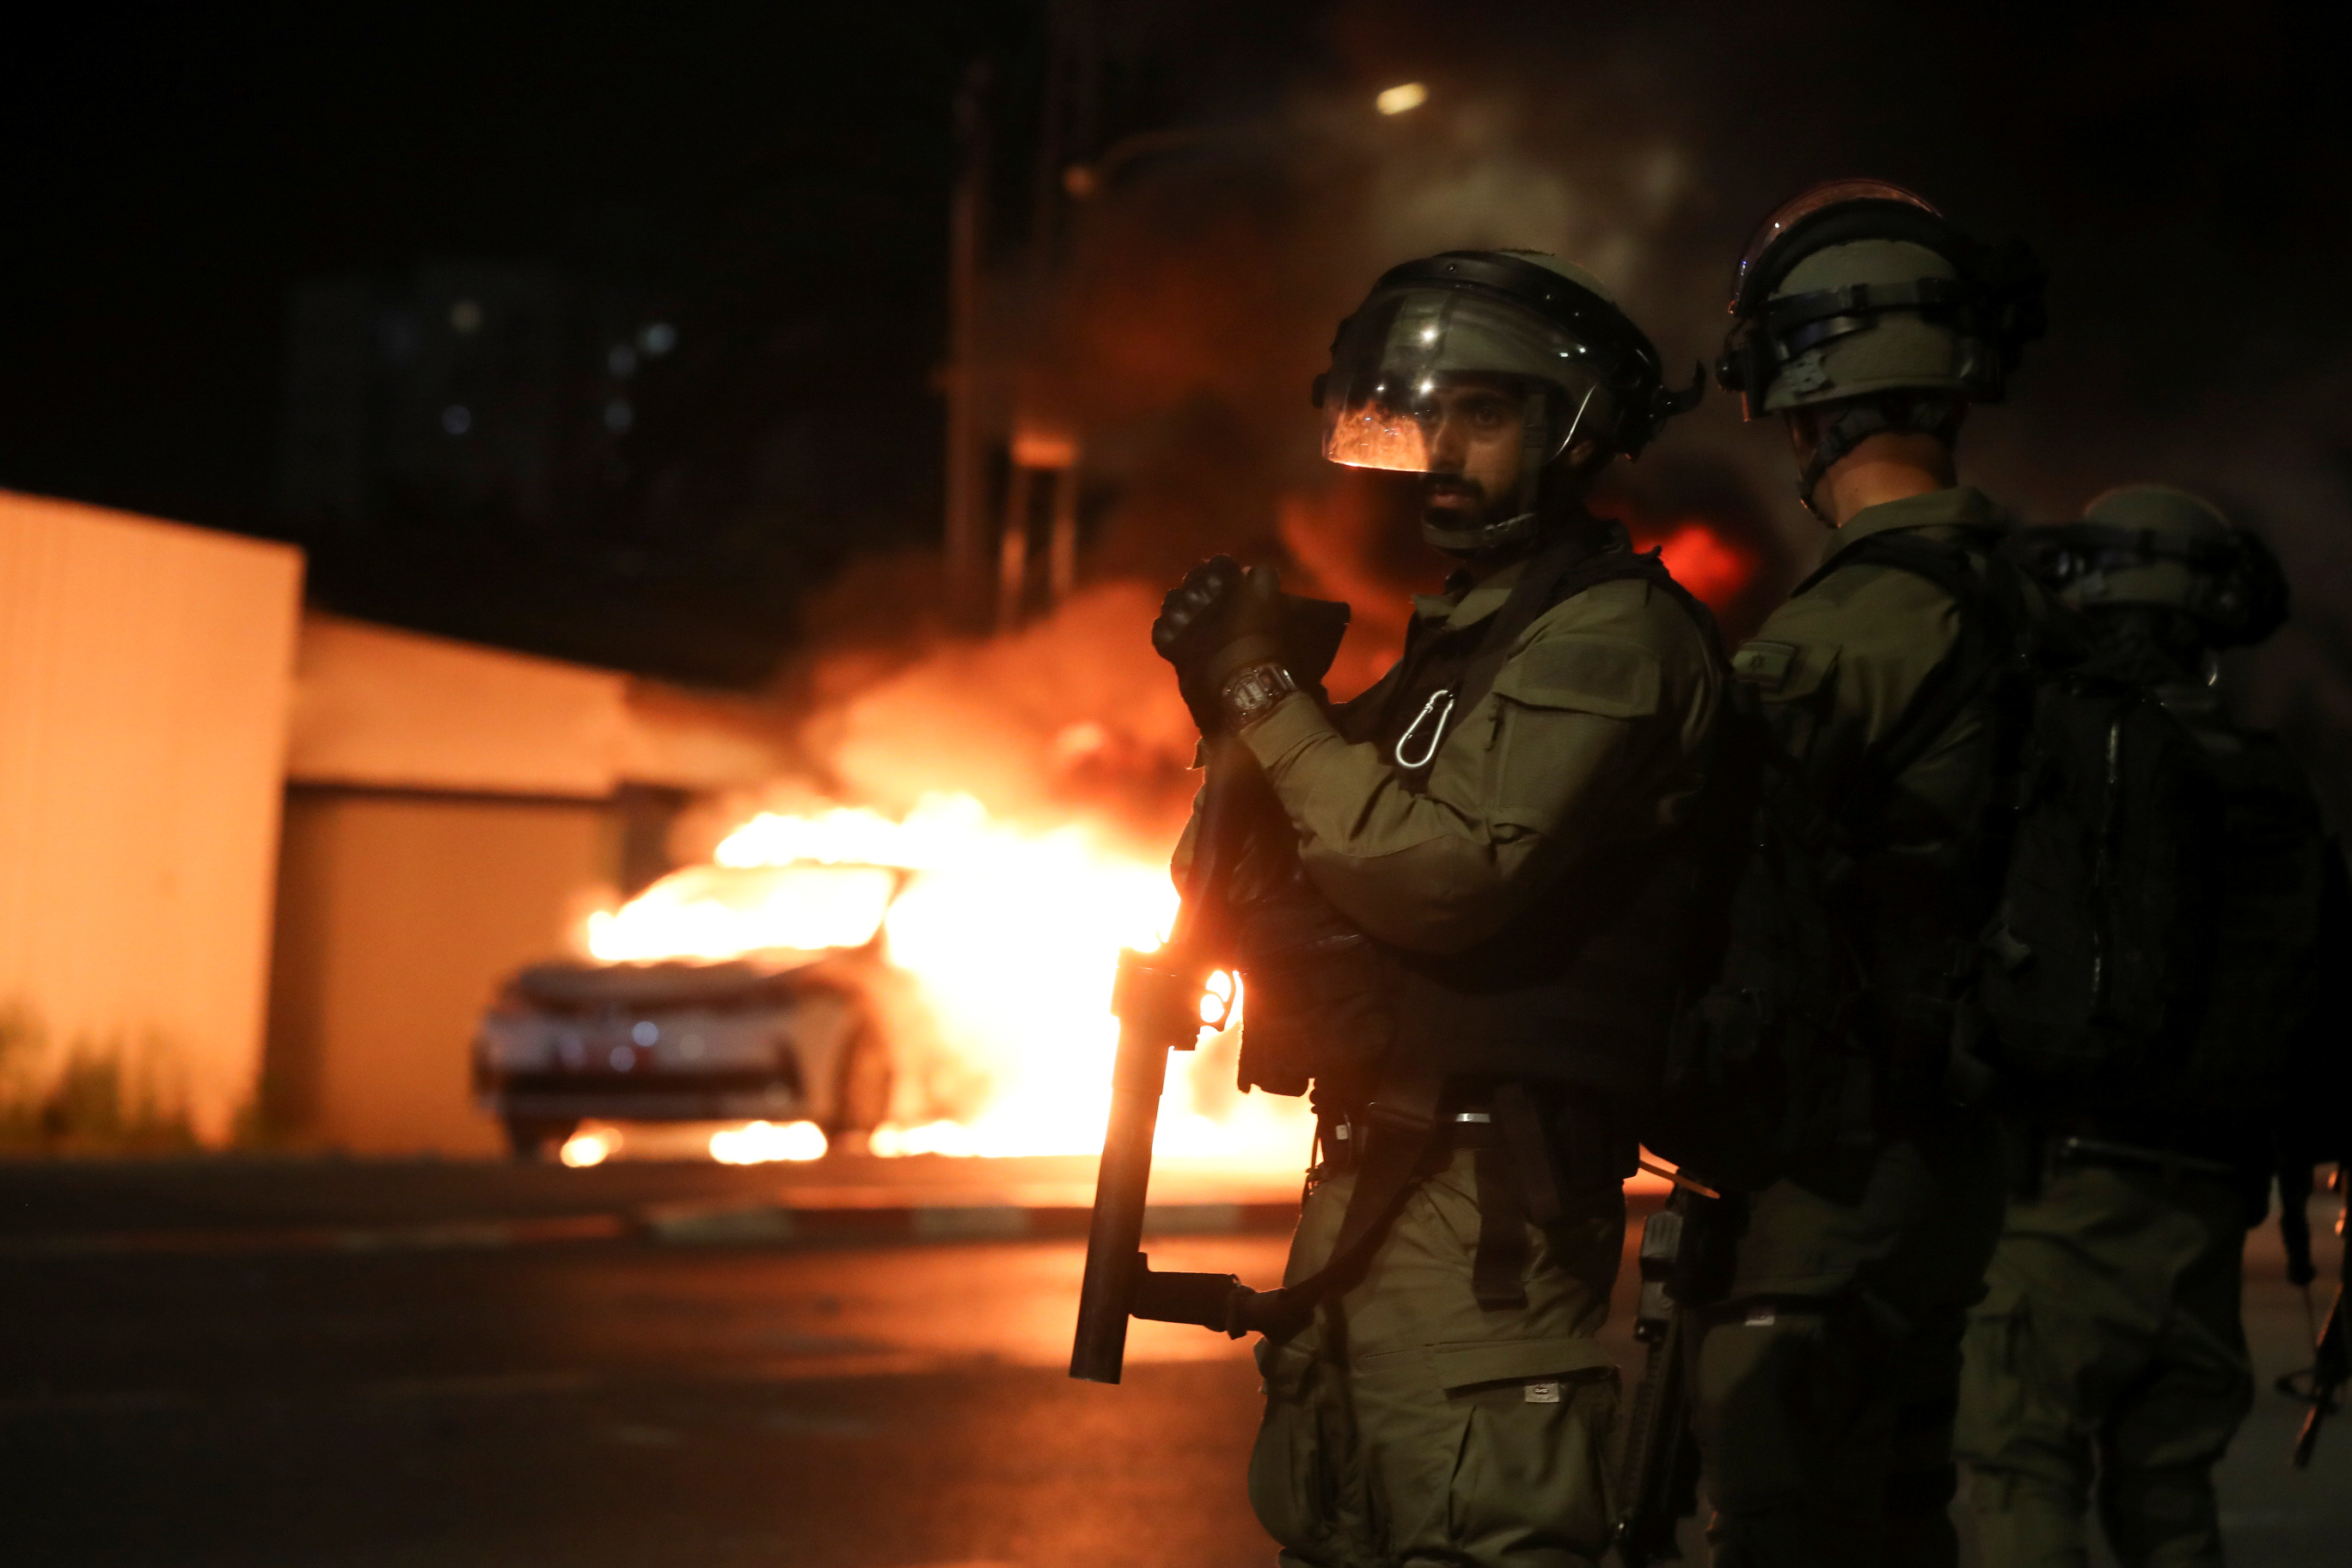 Israeli security force members stand near a burning Israeli police car during clashes between Israeli police and members of the country's Arab minority in the Arab-Jewish town of Lod, Israel May 12, 2021. REUTERS/Ammar Awad